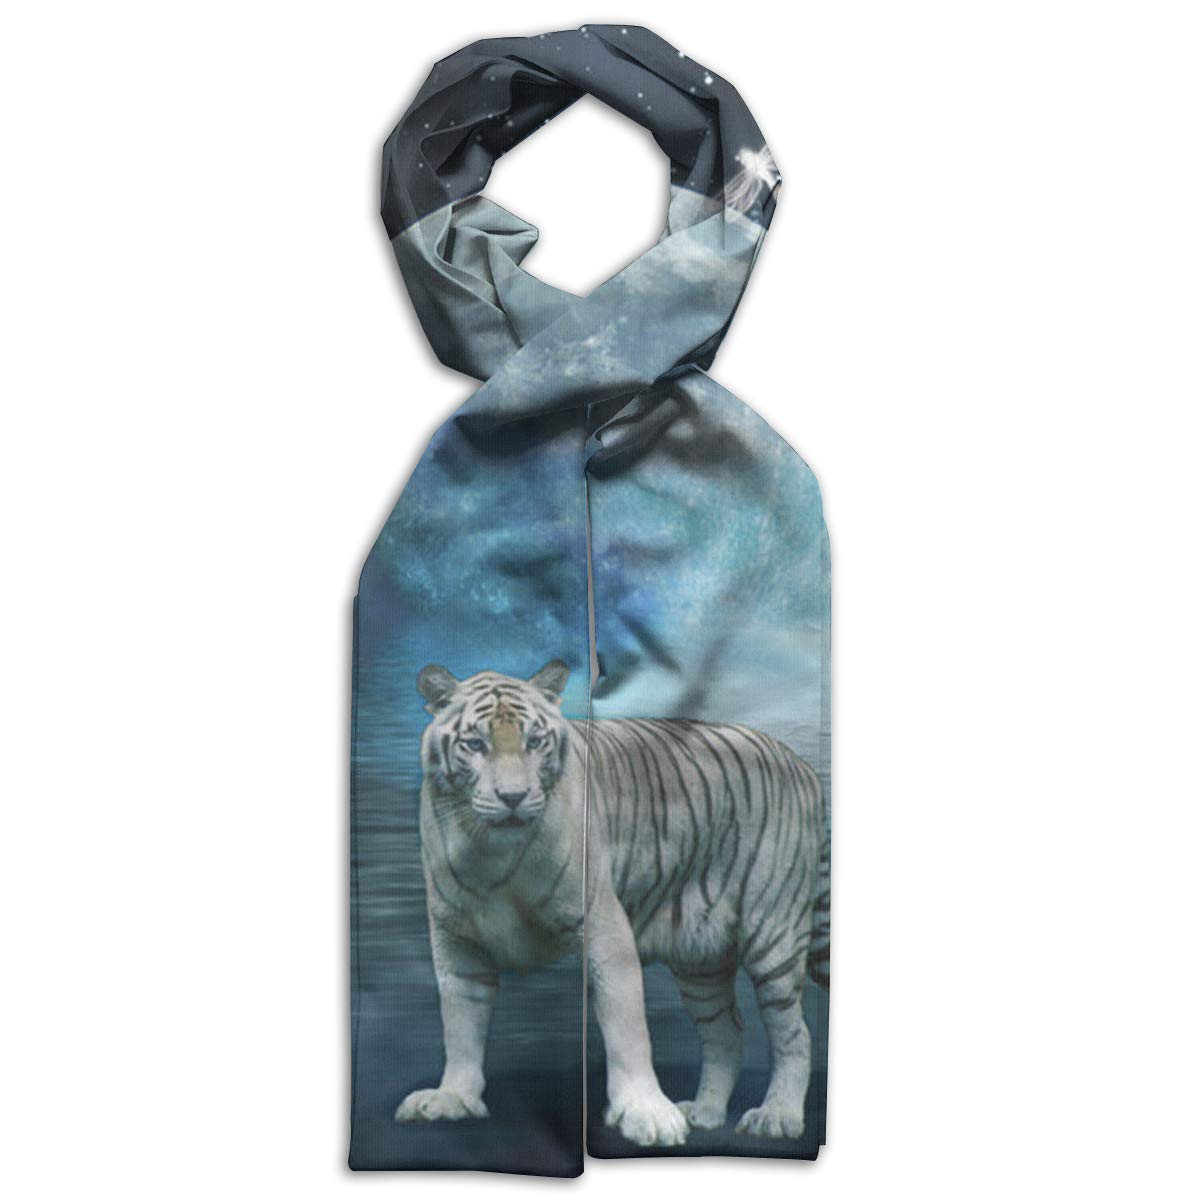 White Tiger And Moon Kids Printed Scarf Soft Winter Infinity Scarf Warmer Travel Scarf For Kids Perfect Birthday Gift